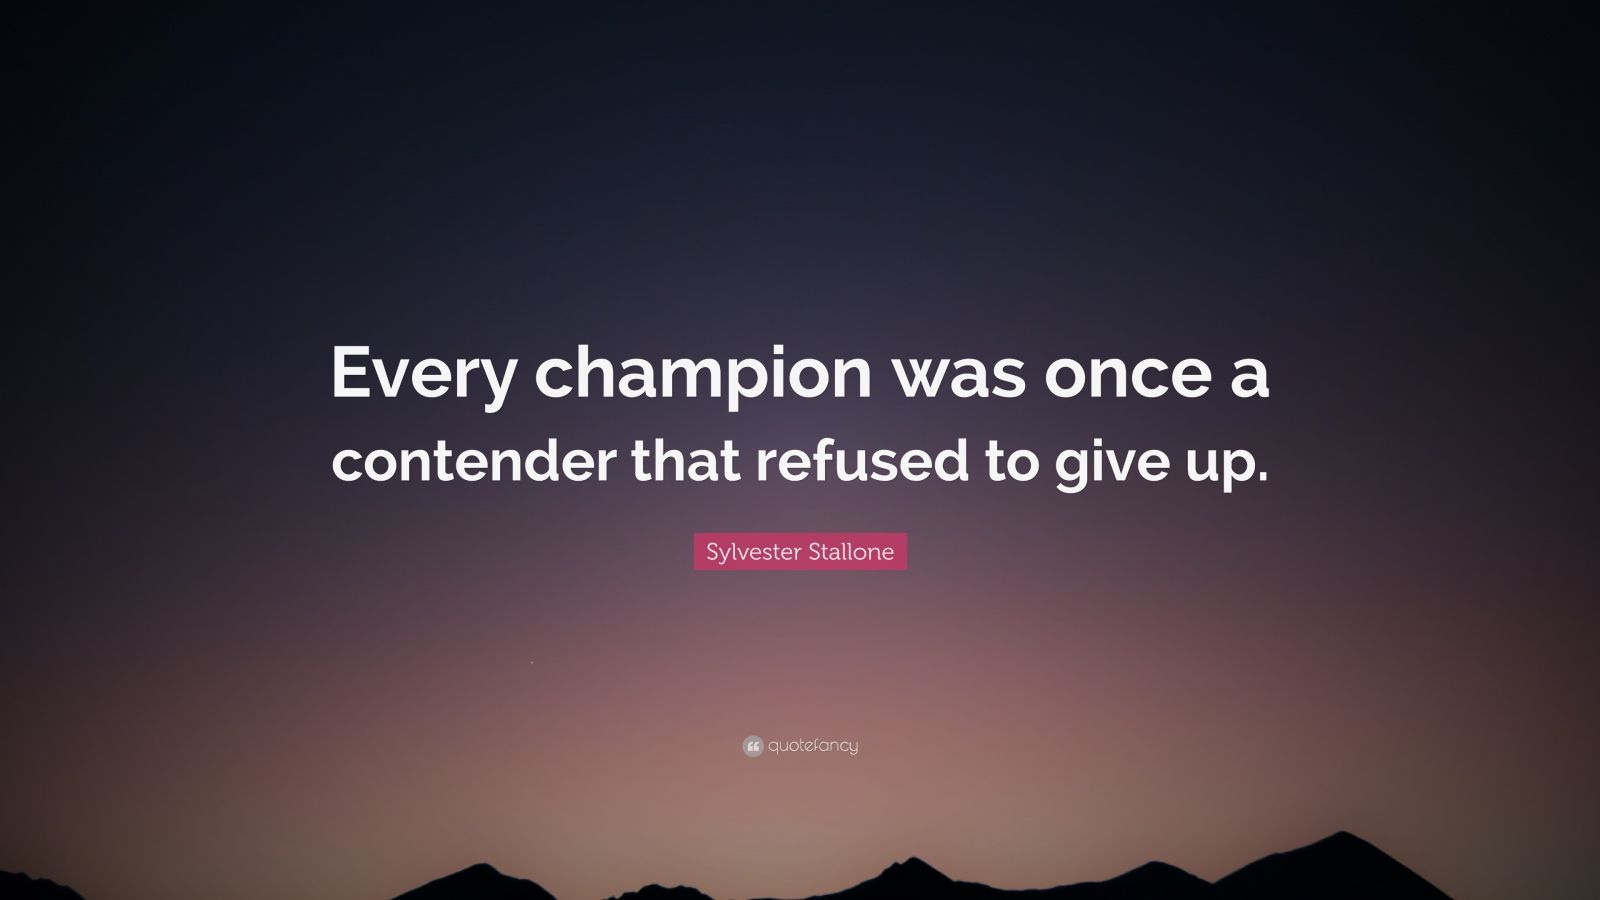 Napoleon Hill Quotes Wallpaper Sylvester Stallone Quote Every Champion Was Once A